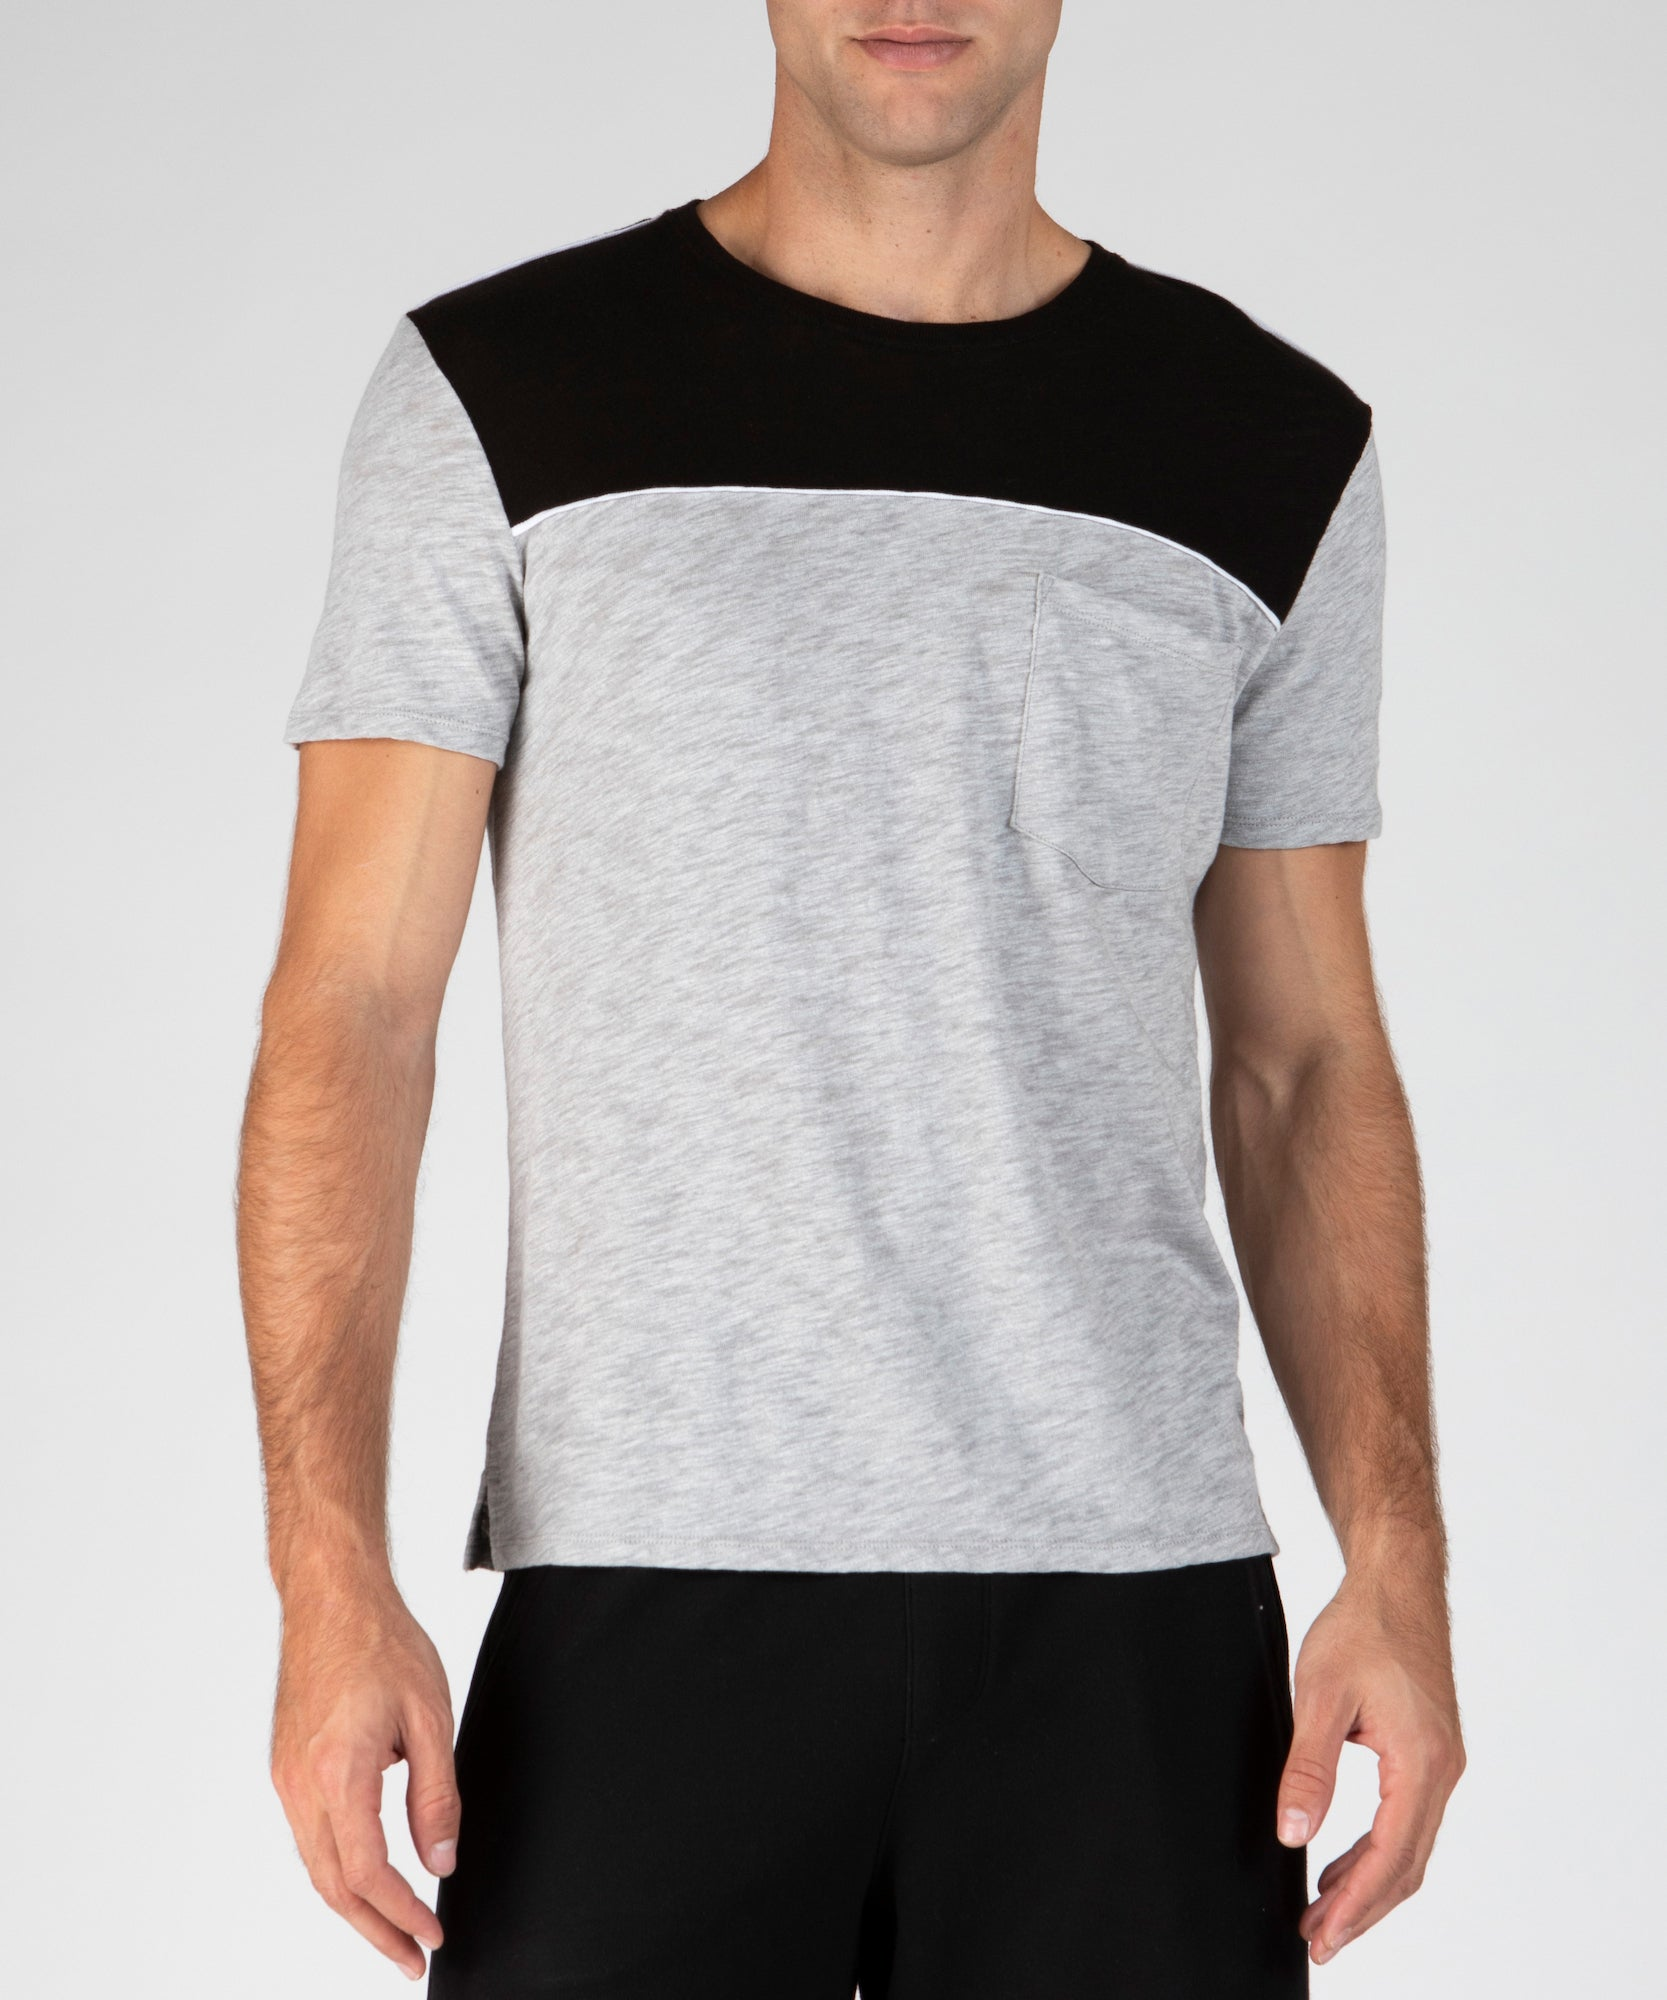 Heather Grey and Black Slub Jersey Colorblock Short Sleeve Crew Neck Tee - Men's Cotton Short Sleeve Tee by ATM Anthony Thomas Melillo